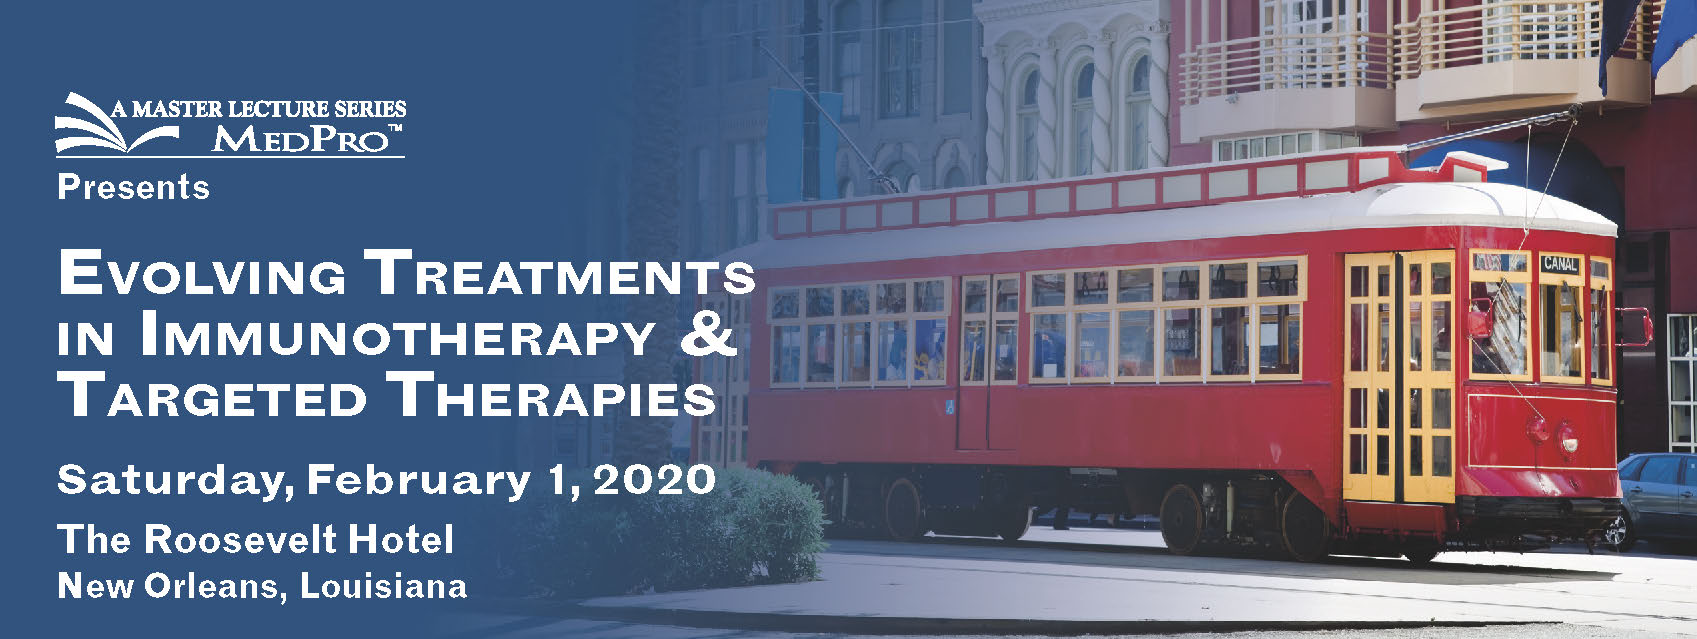 MLS - Evolving Treatments in Immunotherapy & Targeted Therapies - February 1, 2020 - New Orleans,  LA